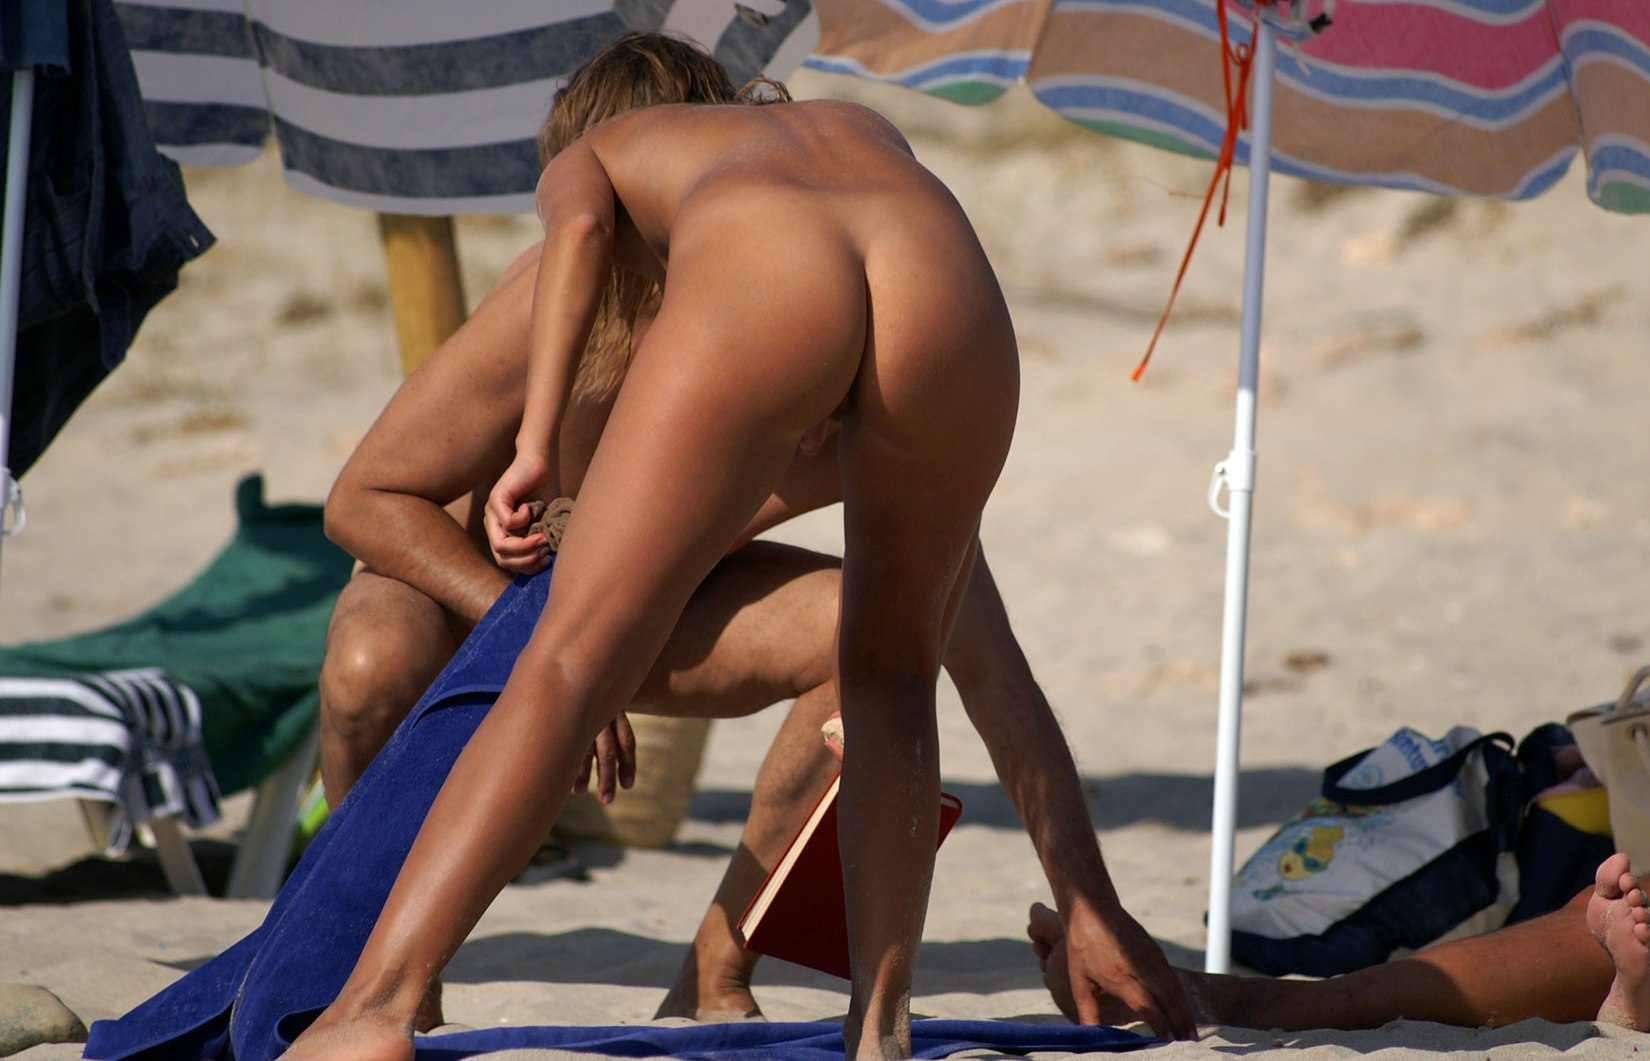 Nice ass crack view on a nudist beach